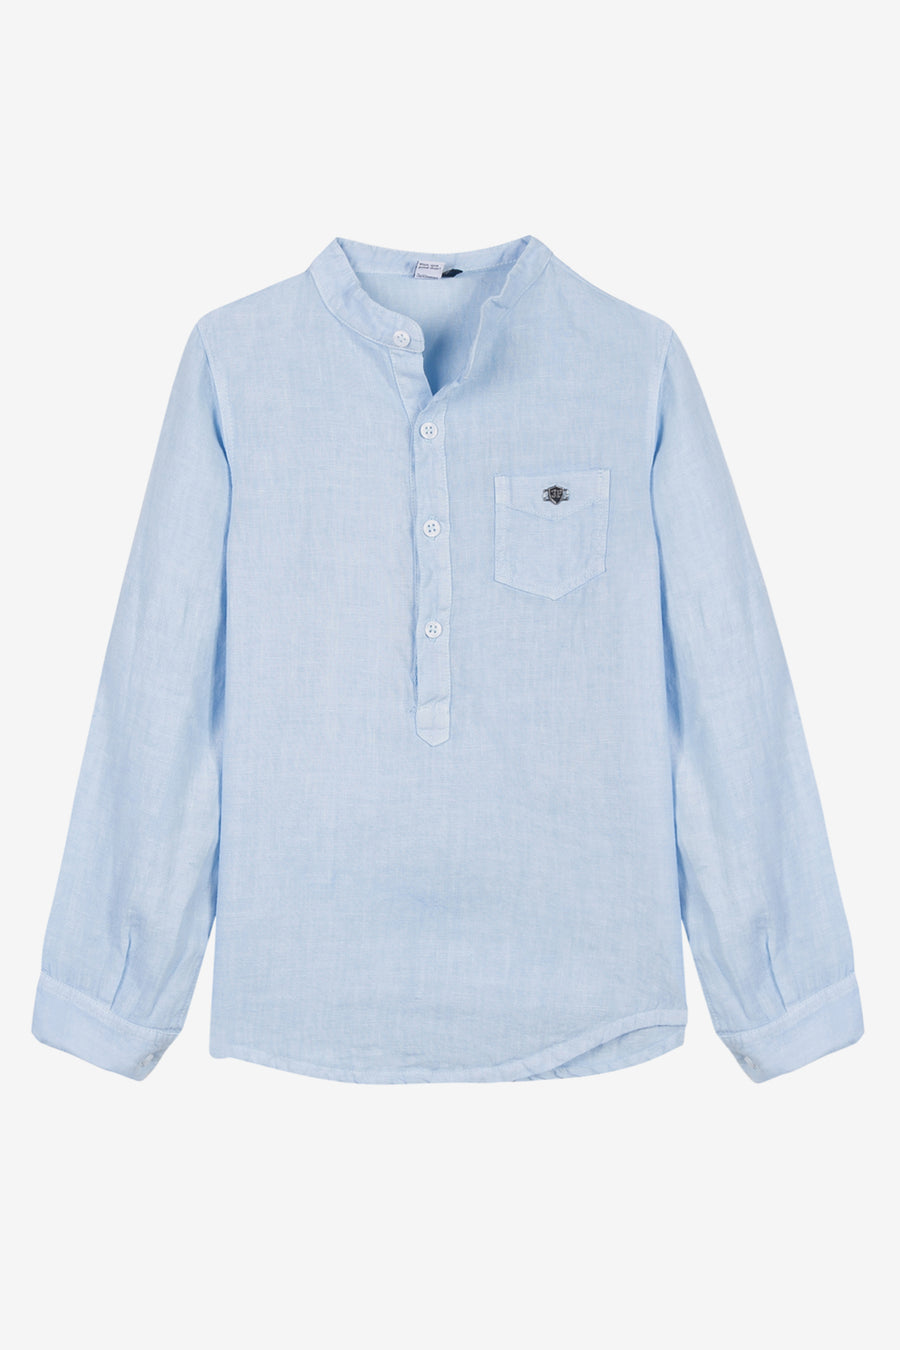 3pommes Light Blue Linen Shirt